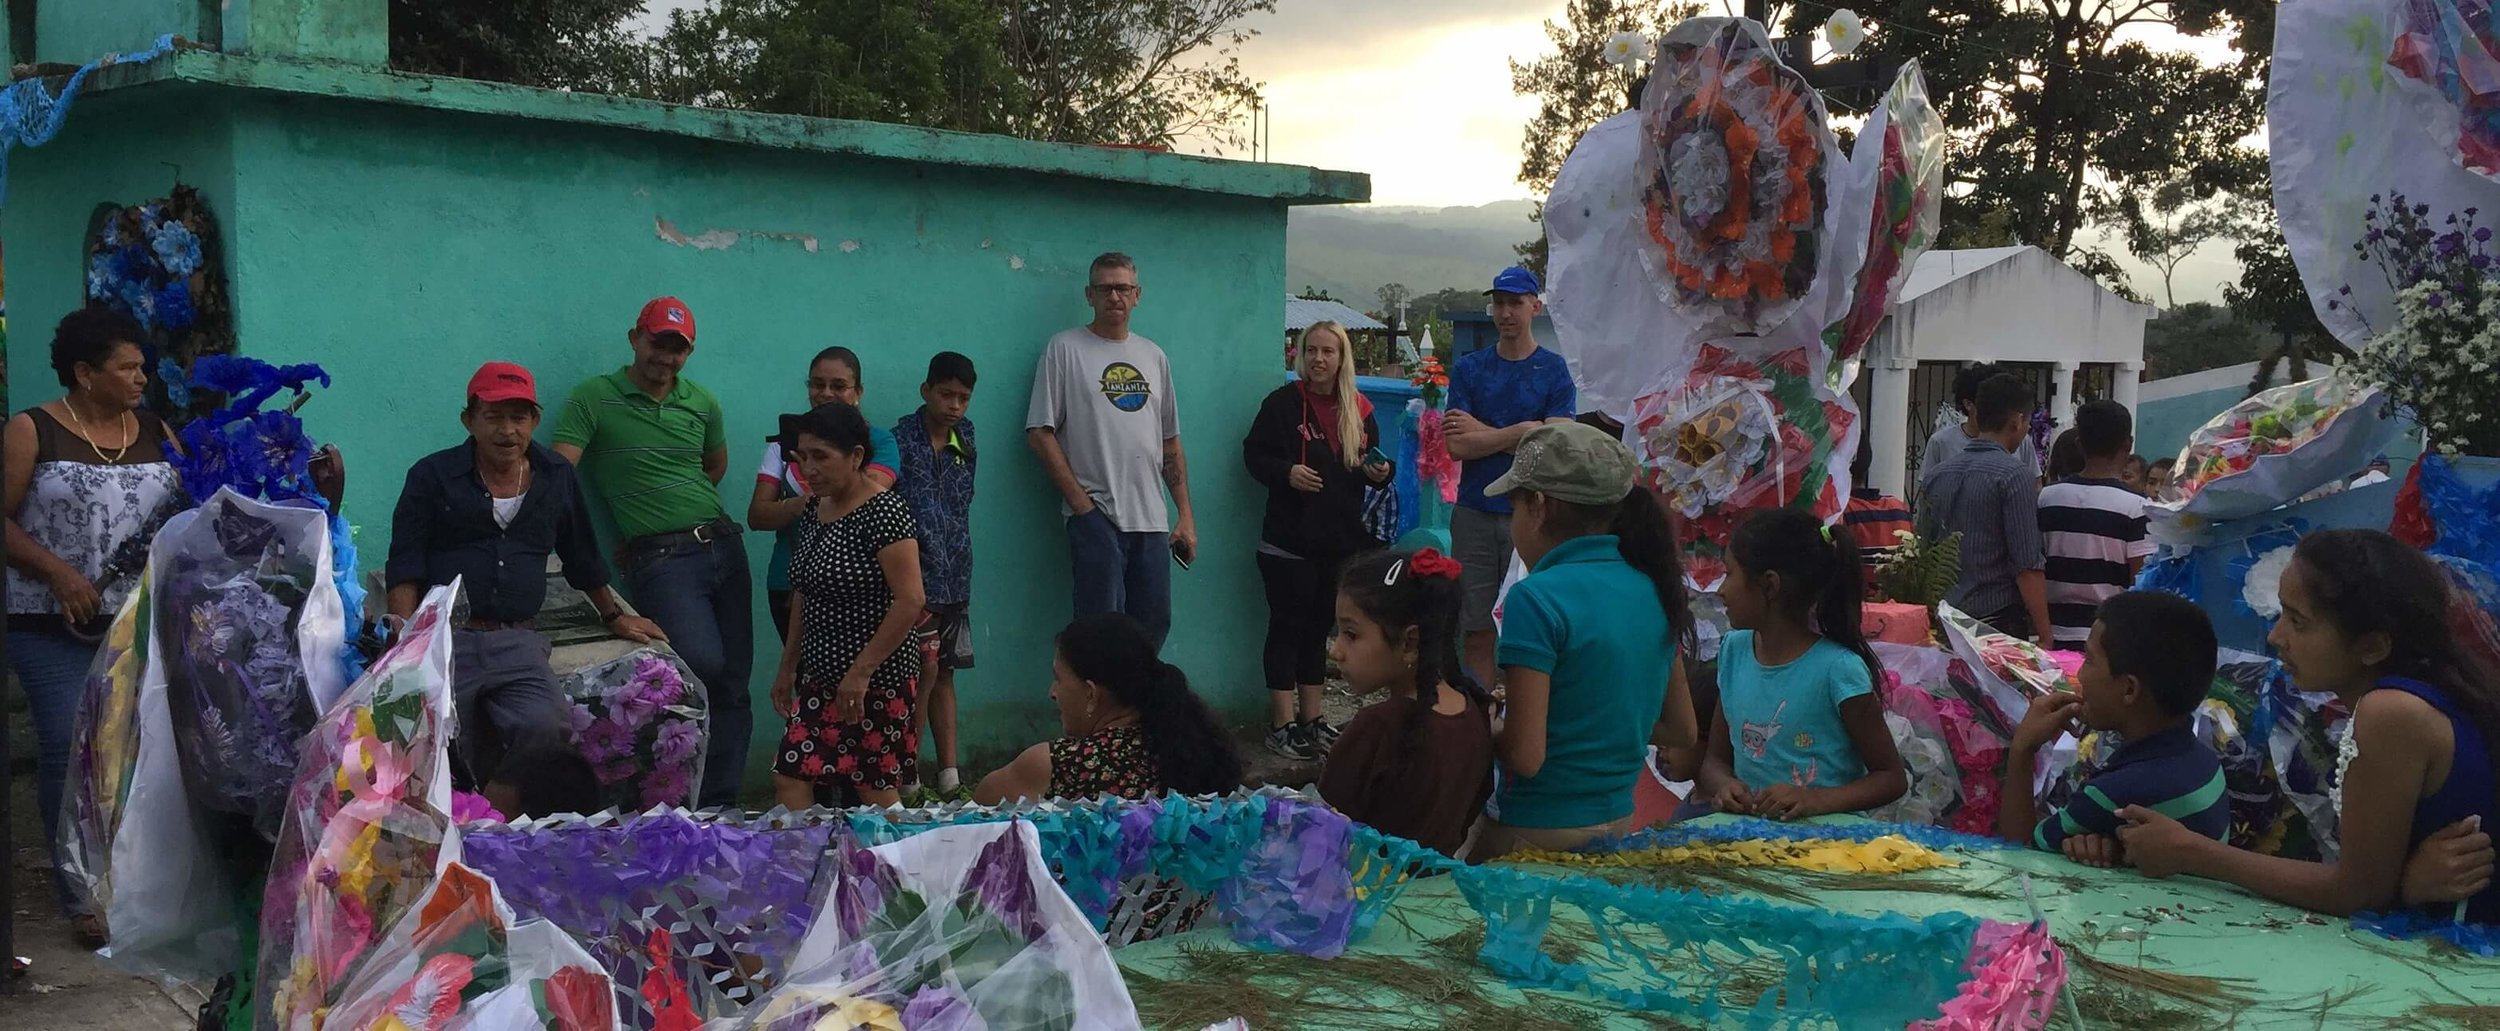 """Our first day in Guatemala, the team paused in a cemetery for the annual """"Day of the Dead"""" celebration."""